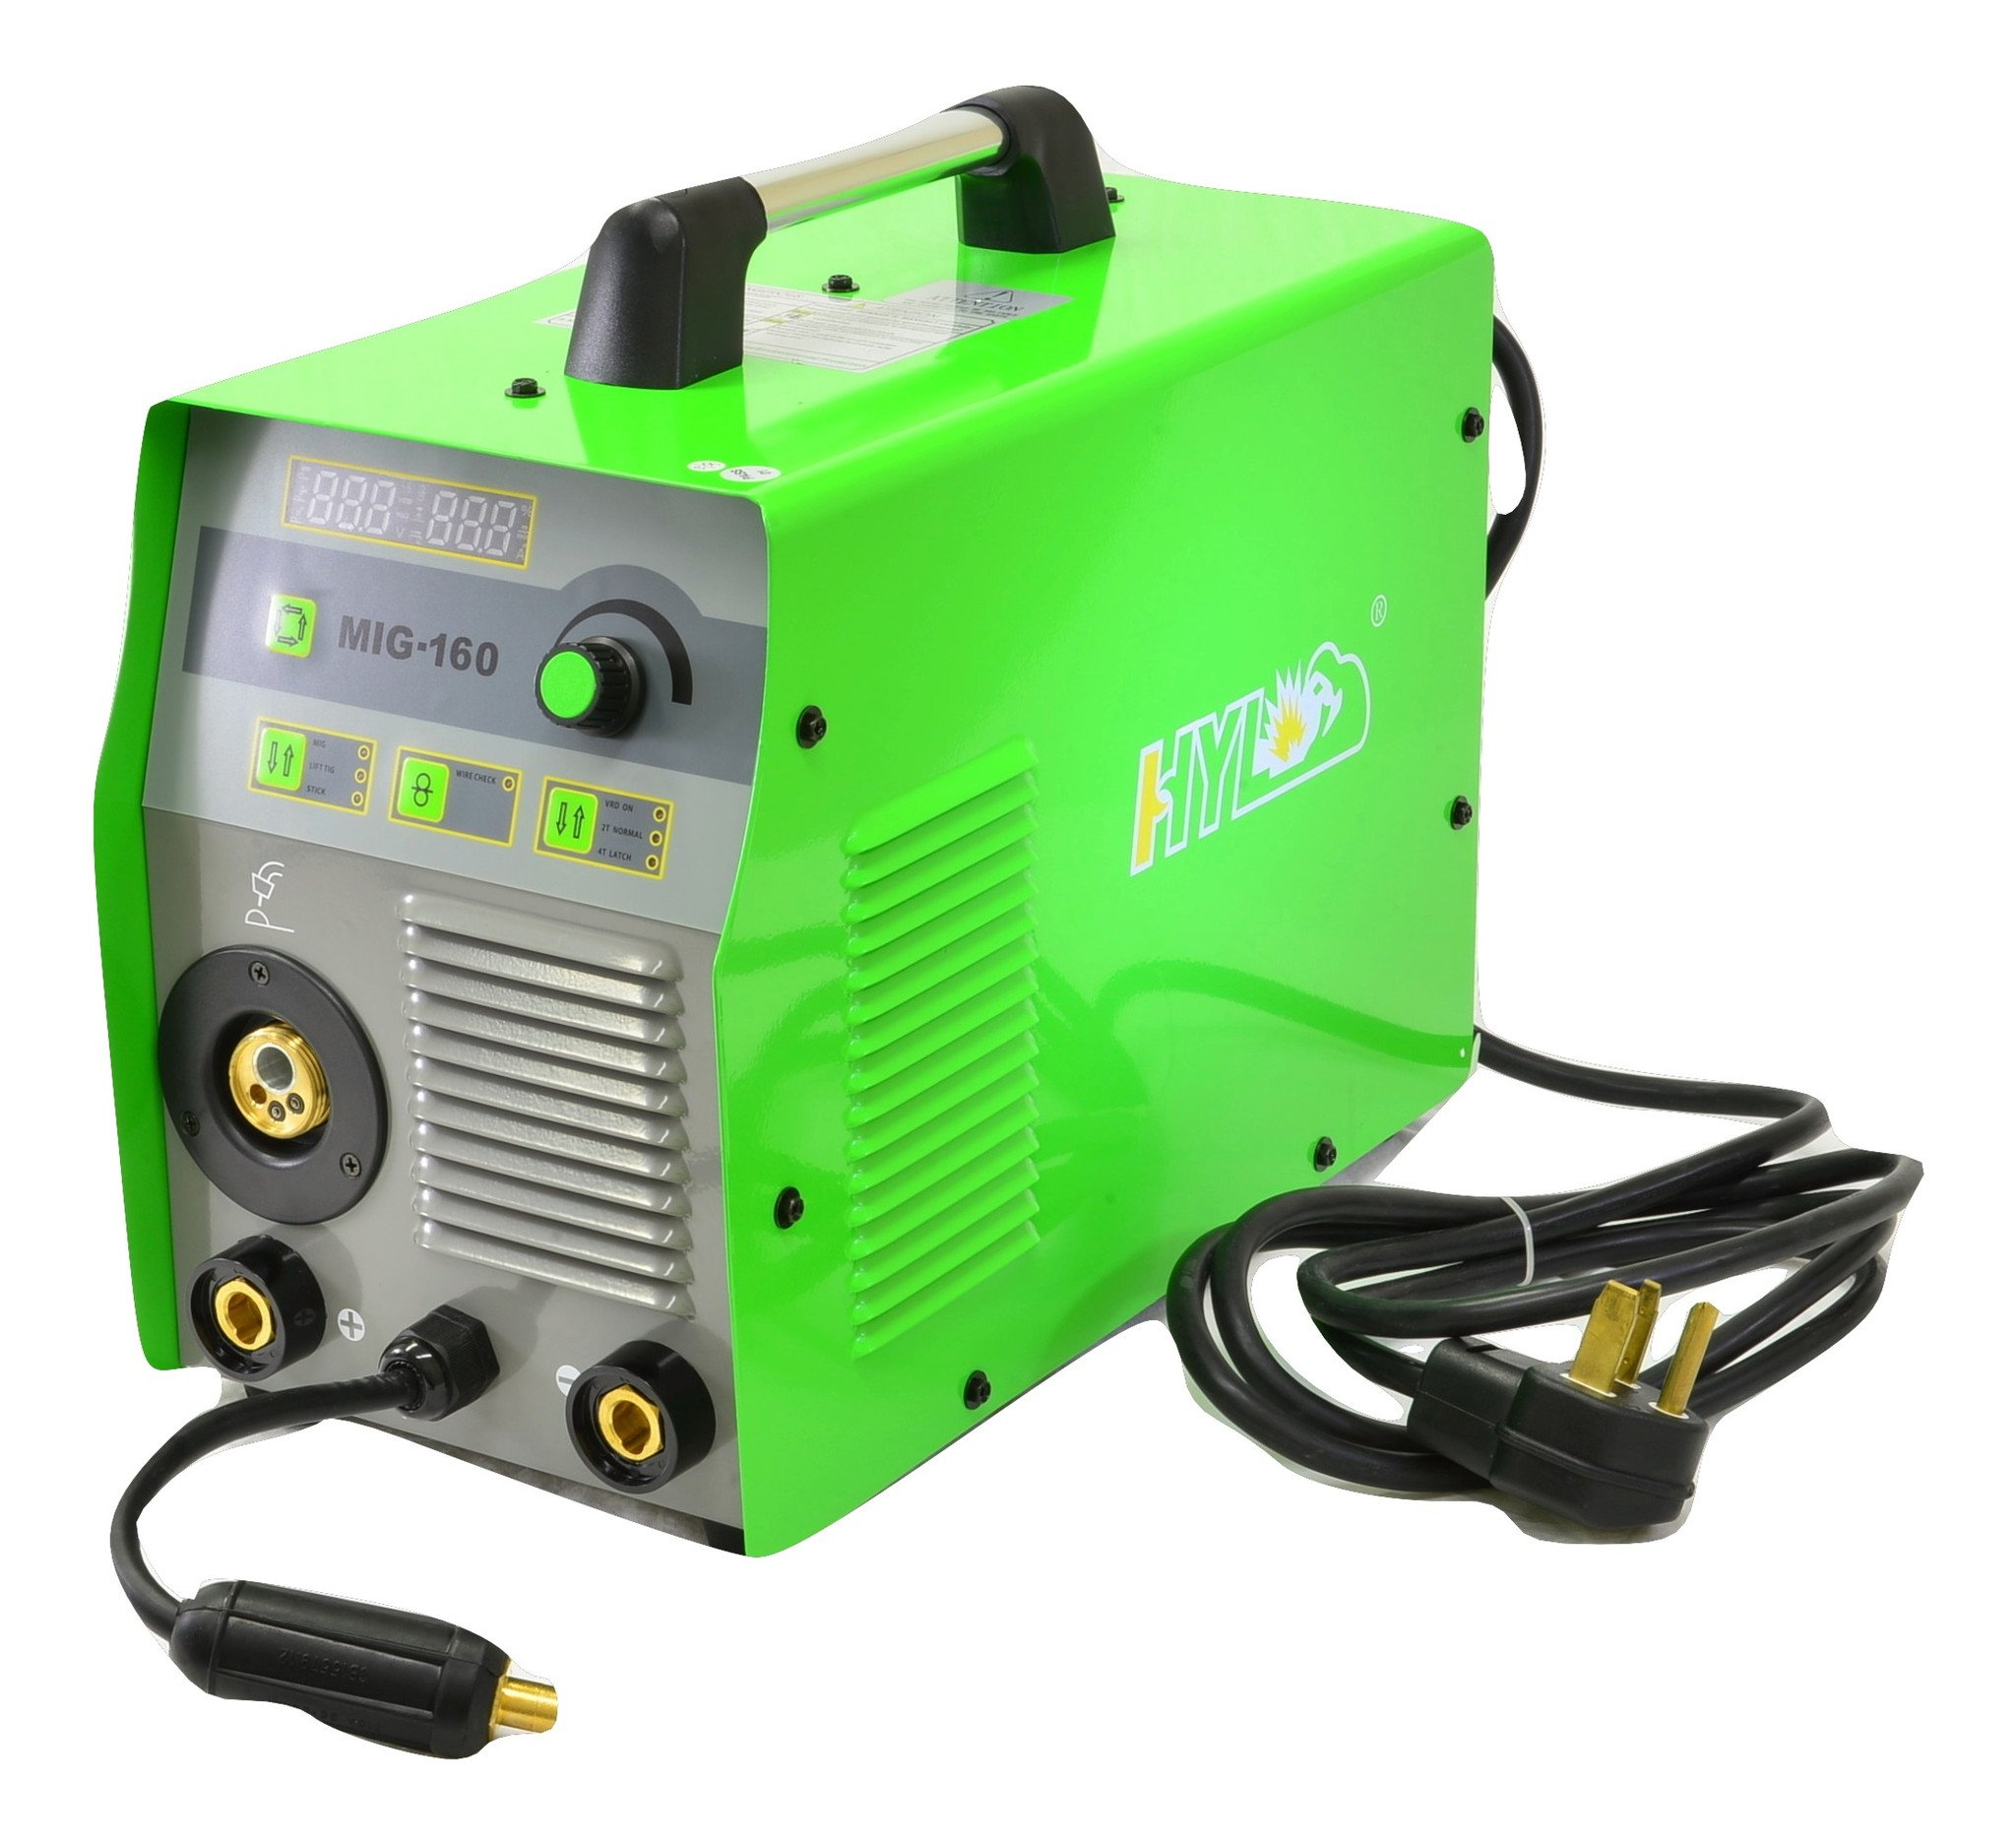 HYL MIG160 Combo Welder MIG/STICK/TIG 3 in 1 - 2YR USA WARRANTY WITH USA BASED PARTS AND SERVICE … by HYL